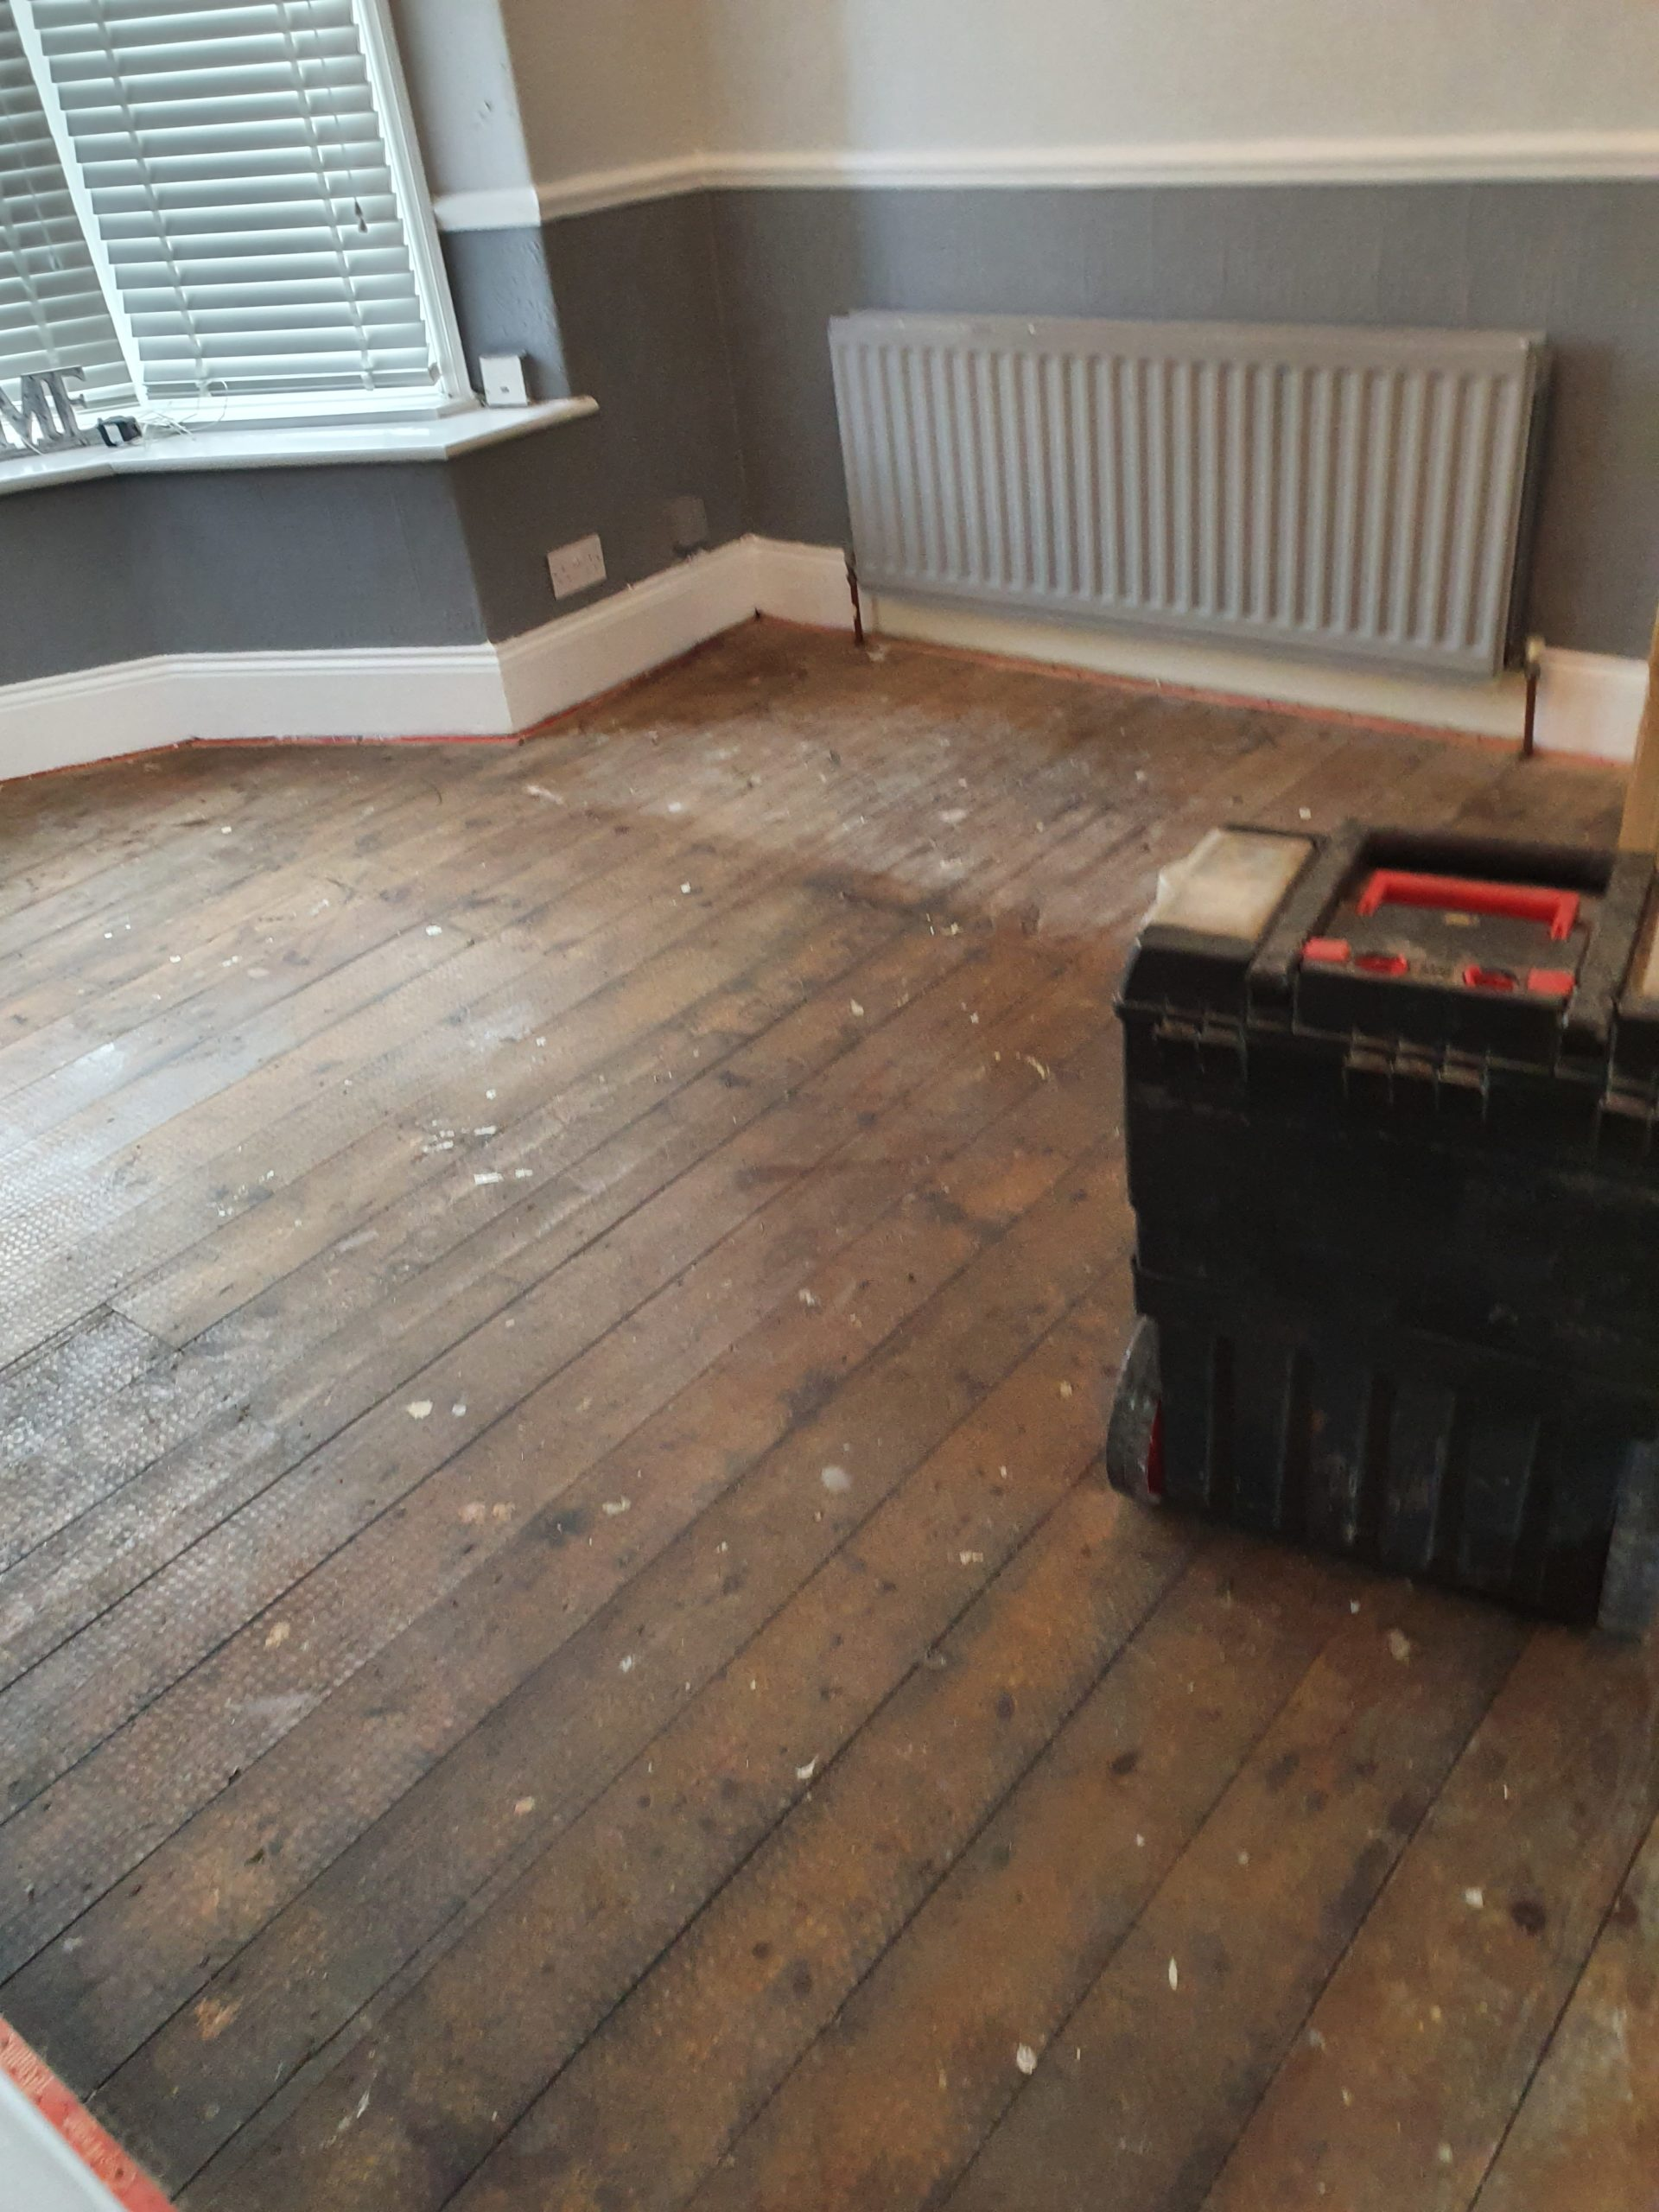 Pine Floor Sanded In Whitley Bay Avs Cleans Restores Avs Cleans Restores